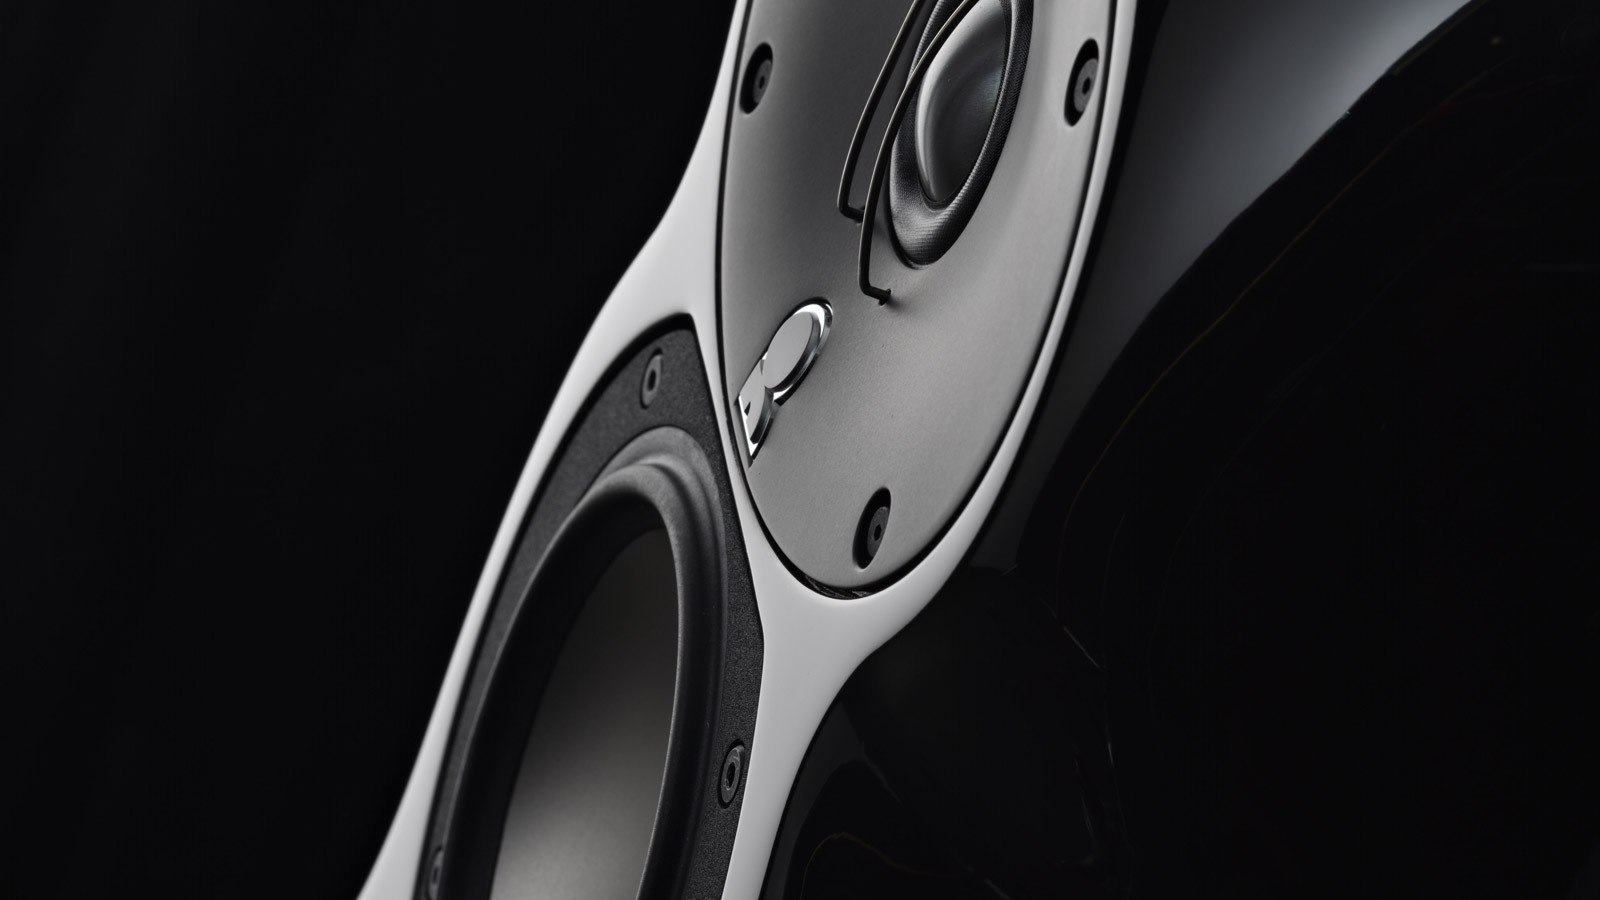 Revel premium audio system